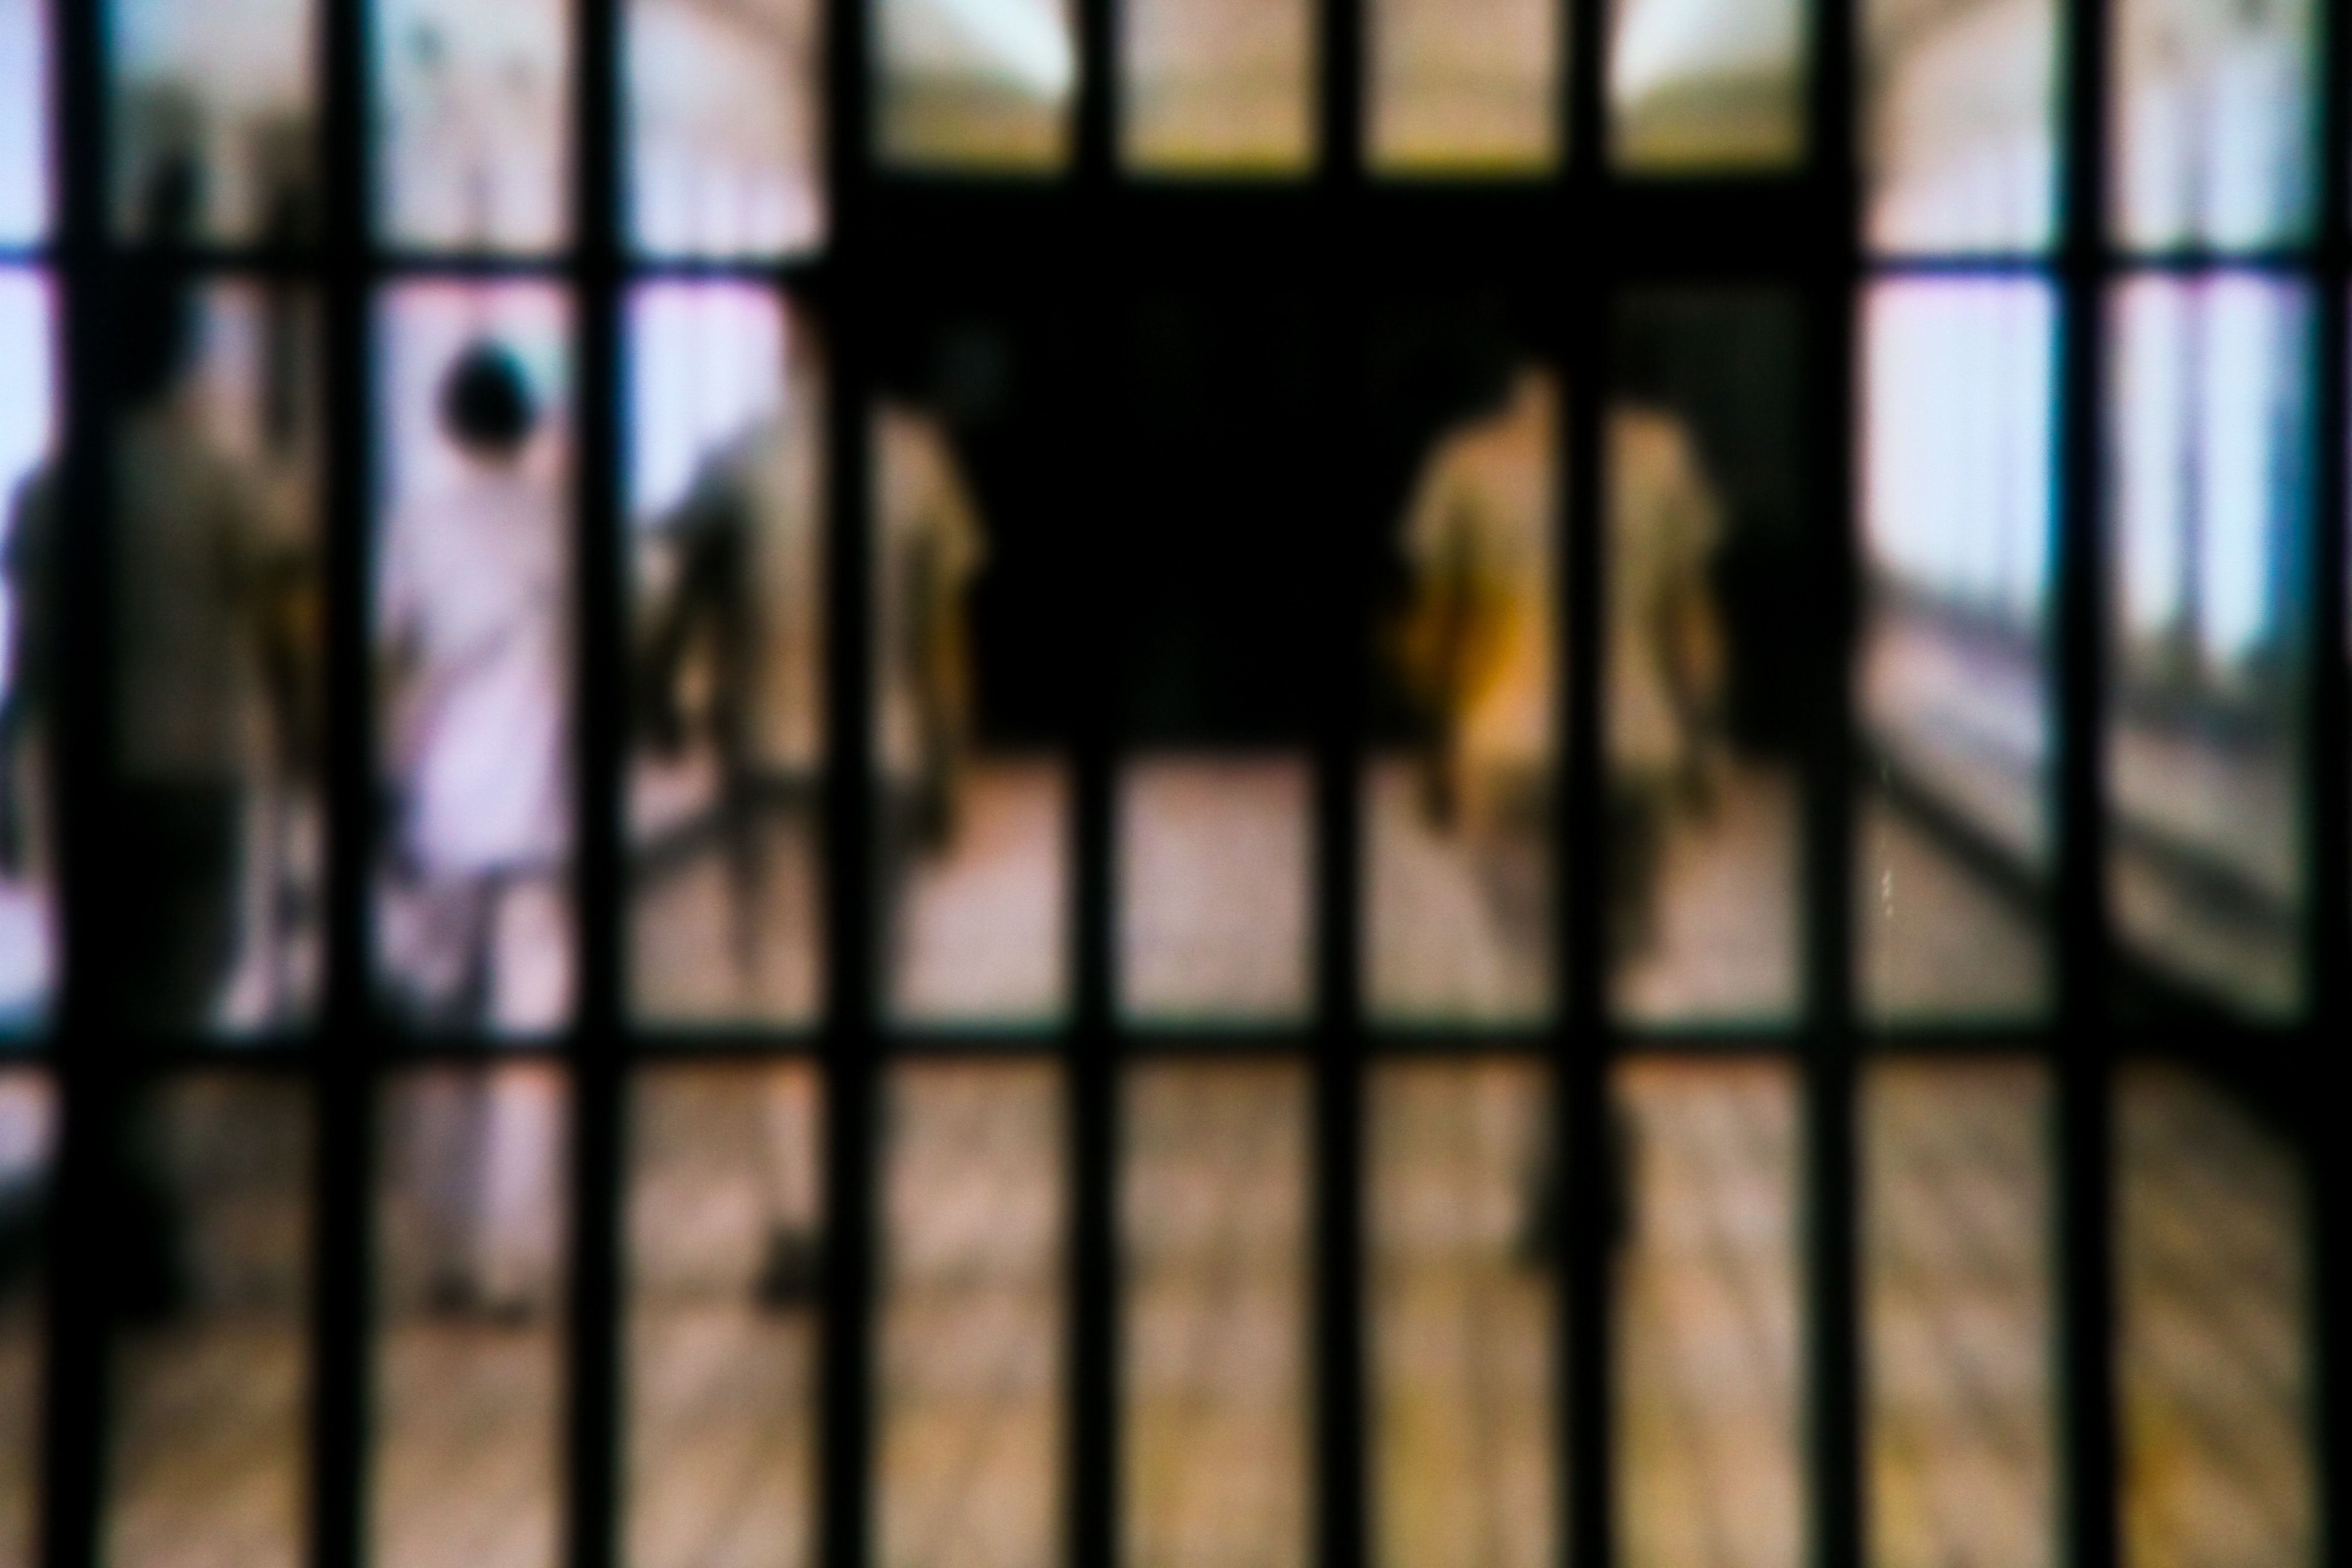 Taken this focused picture of the main entrance of a jail with people waking aware from it. Tried to capture the convict escorted by three security personal.